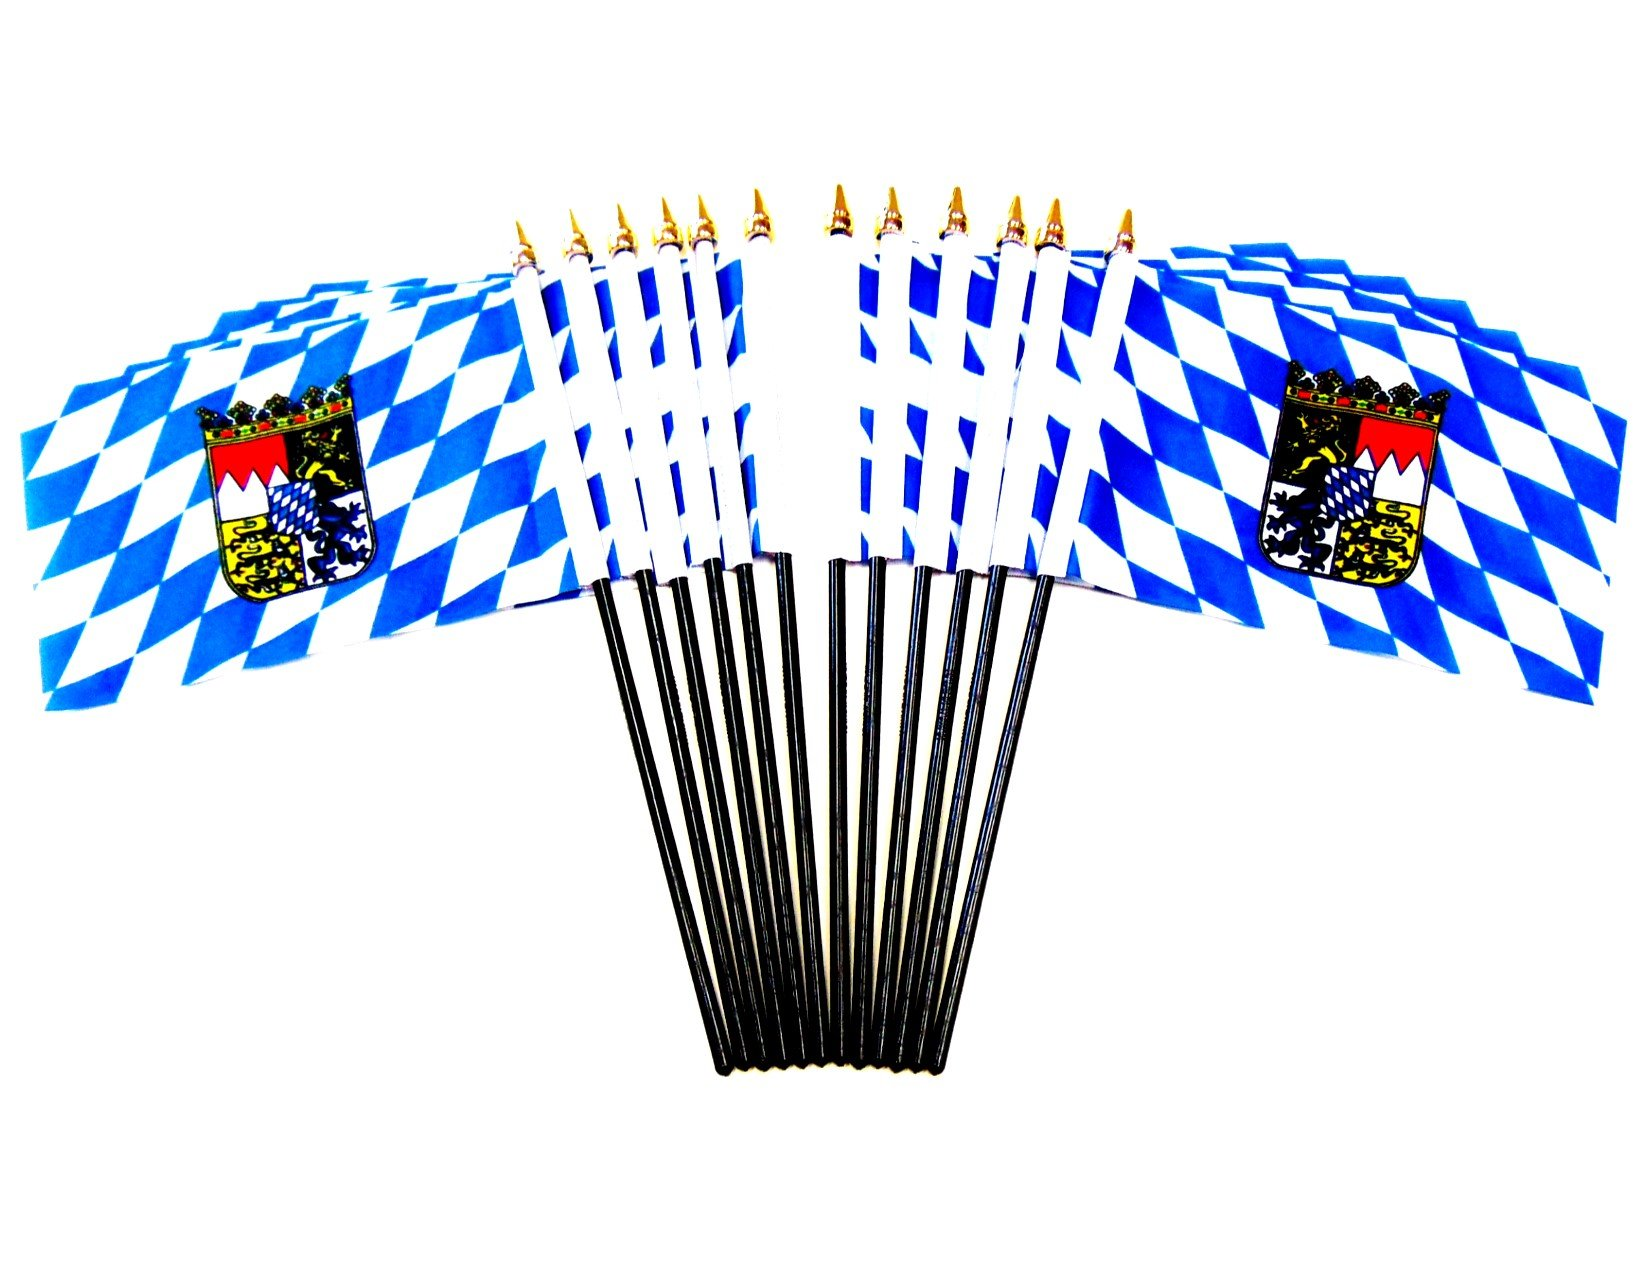 Pack of 12 4''x6'' Bavaria with Crest German Lander (State) Miniature Office Desk & Little Table Flags, 1 Dozen 4''x 6'' Bavaria Small Mini Handheld Waving Stick Flags